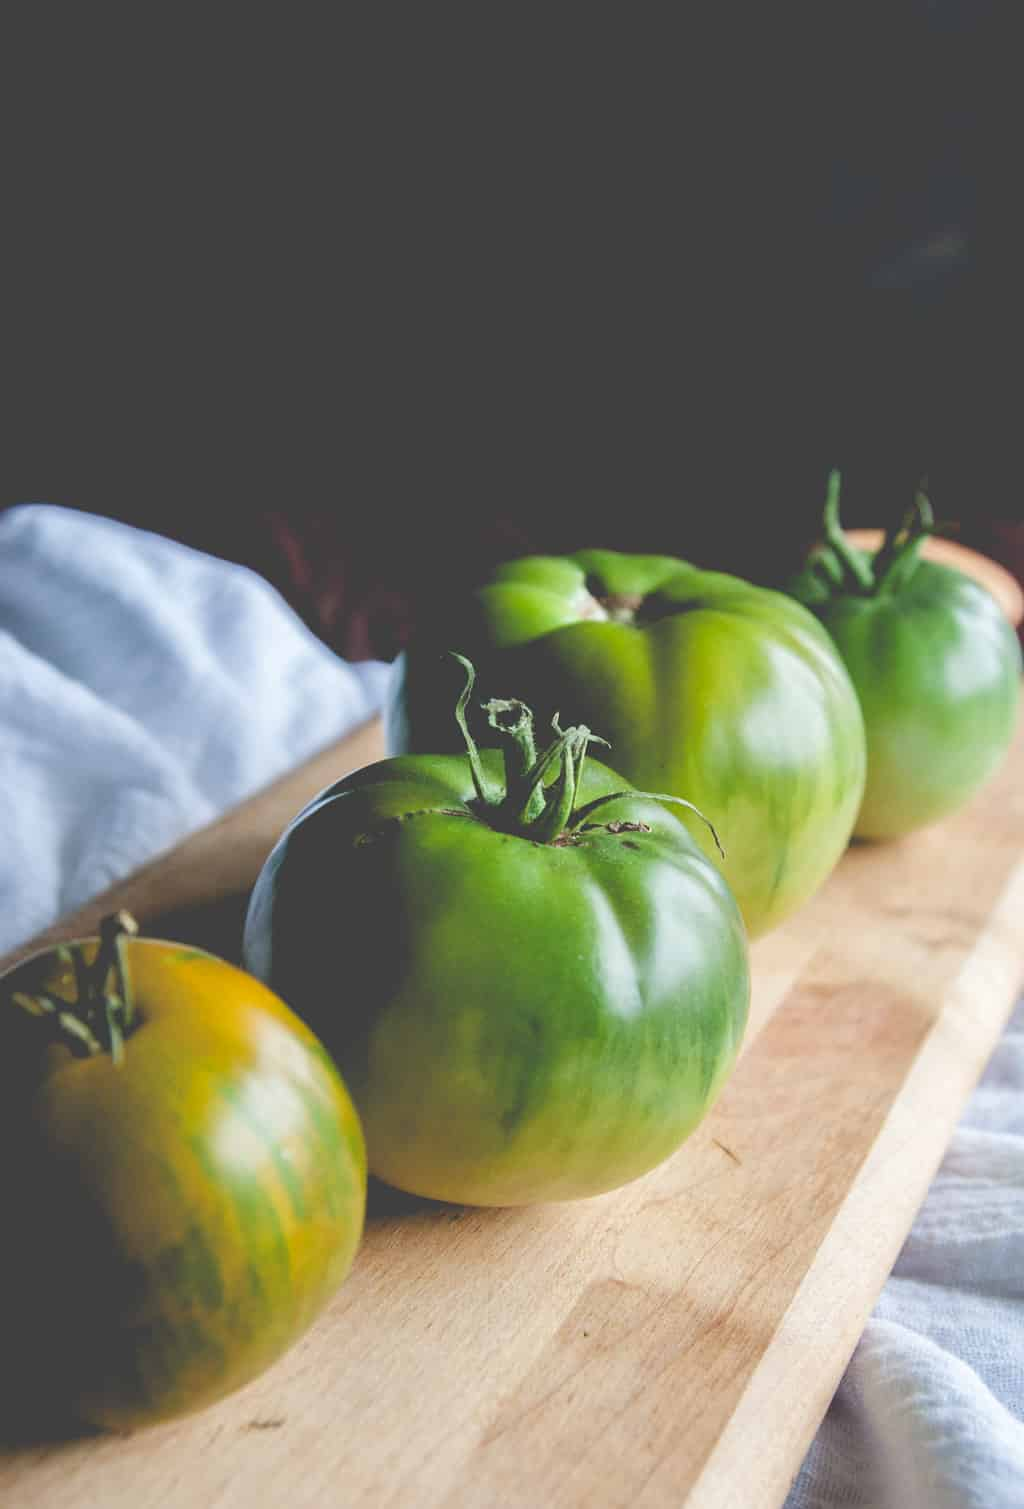 Zebra green tomatoes - green heirloom tomatoes